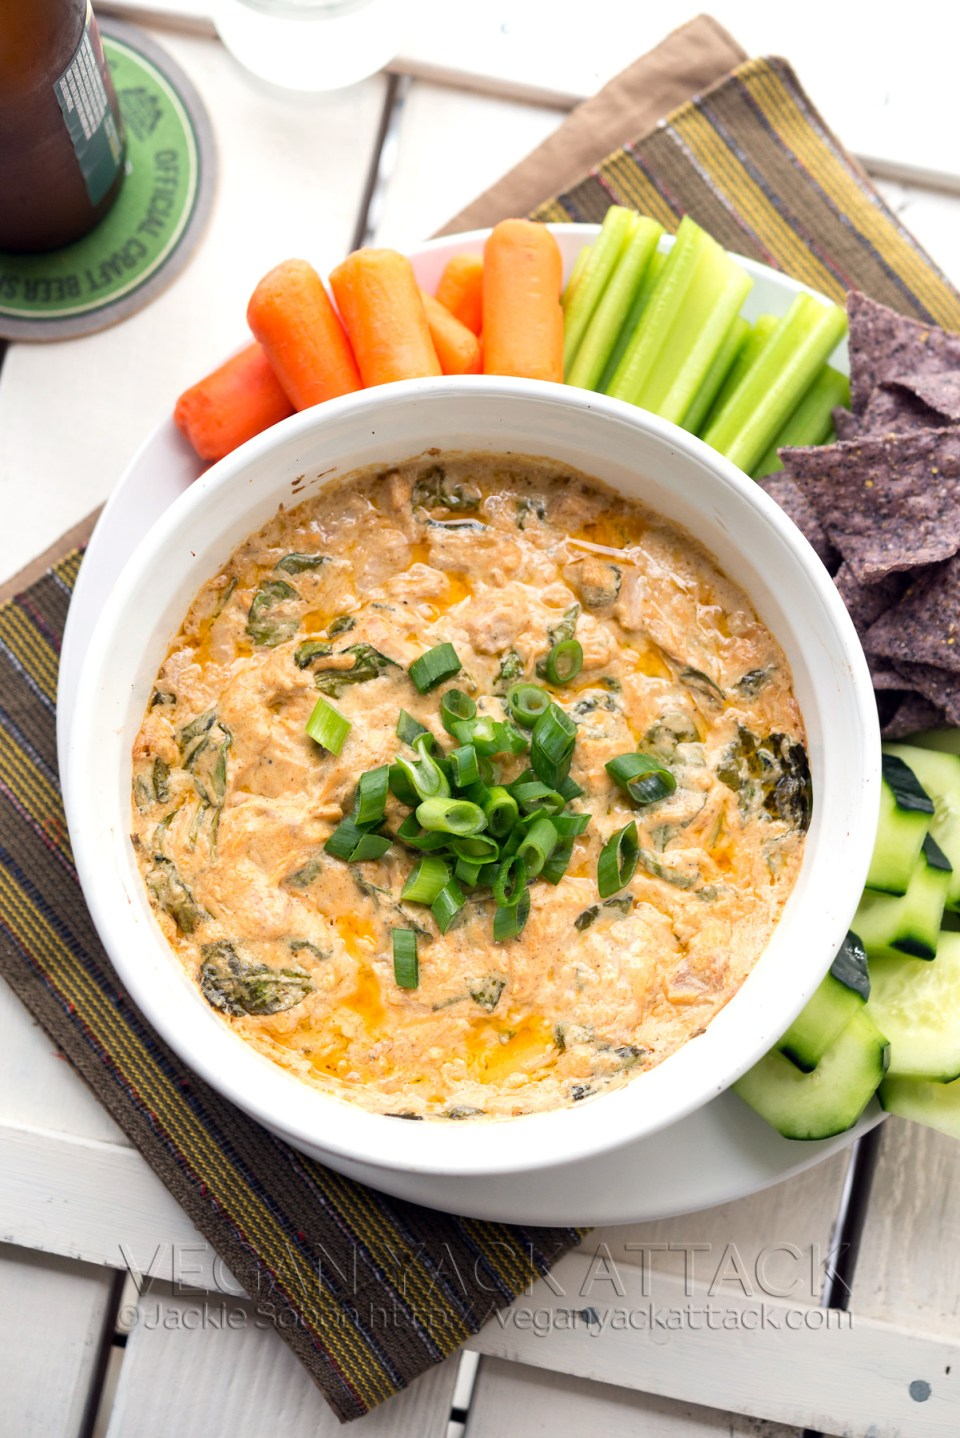 Vegan Buffalo Jackfruit Spinach Dip